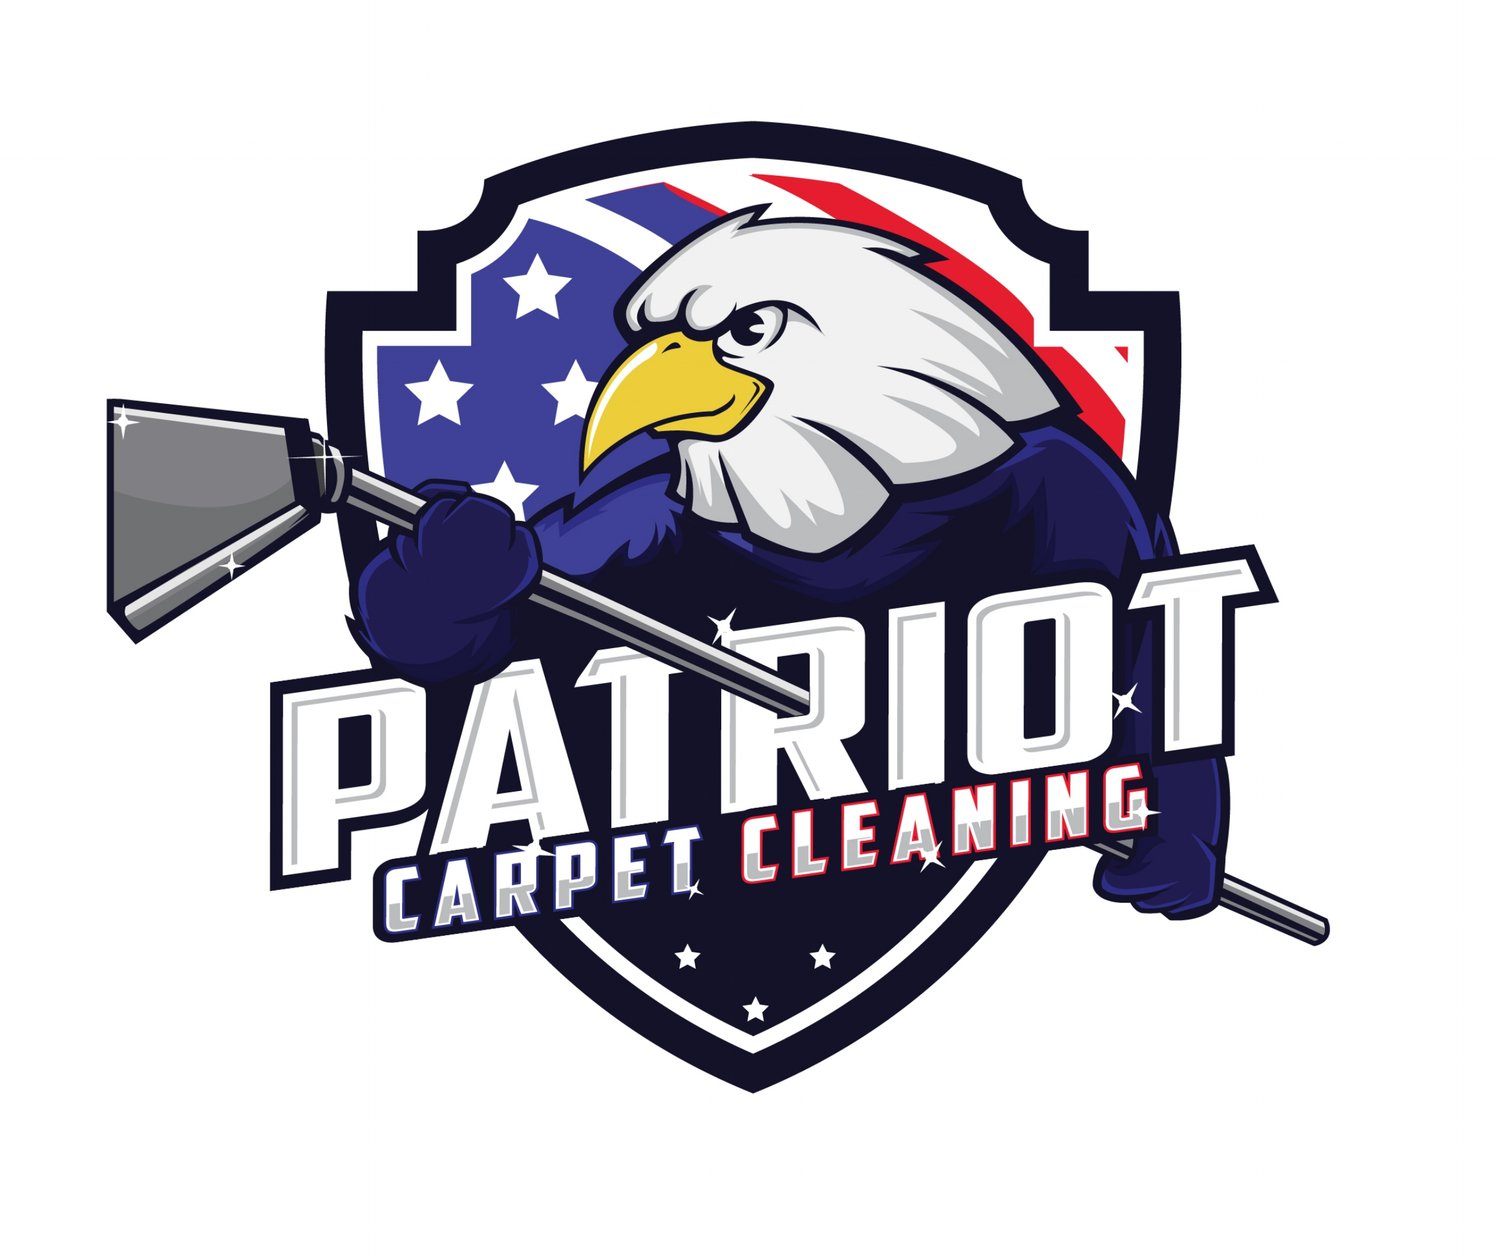 Patriot Carpet Cleaning LLC